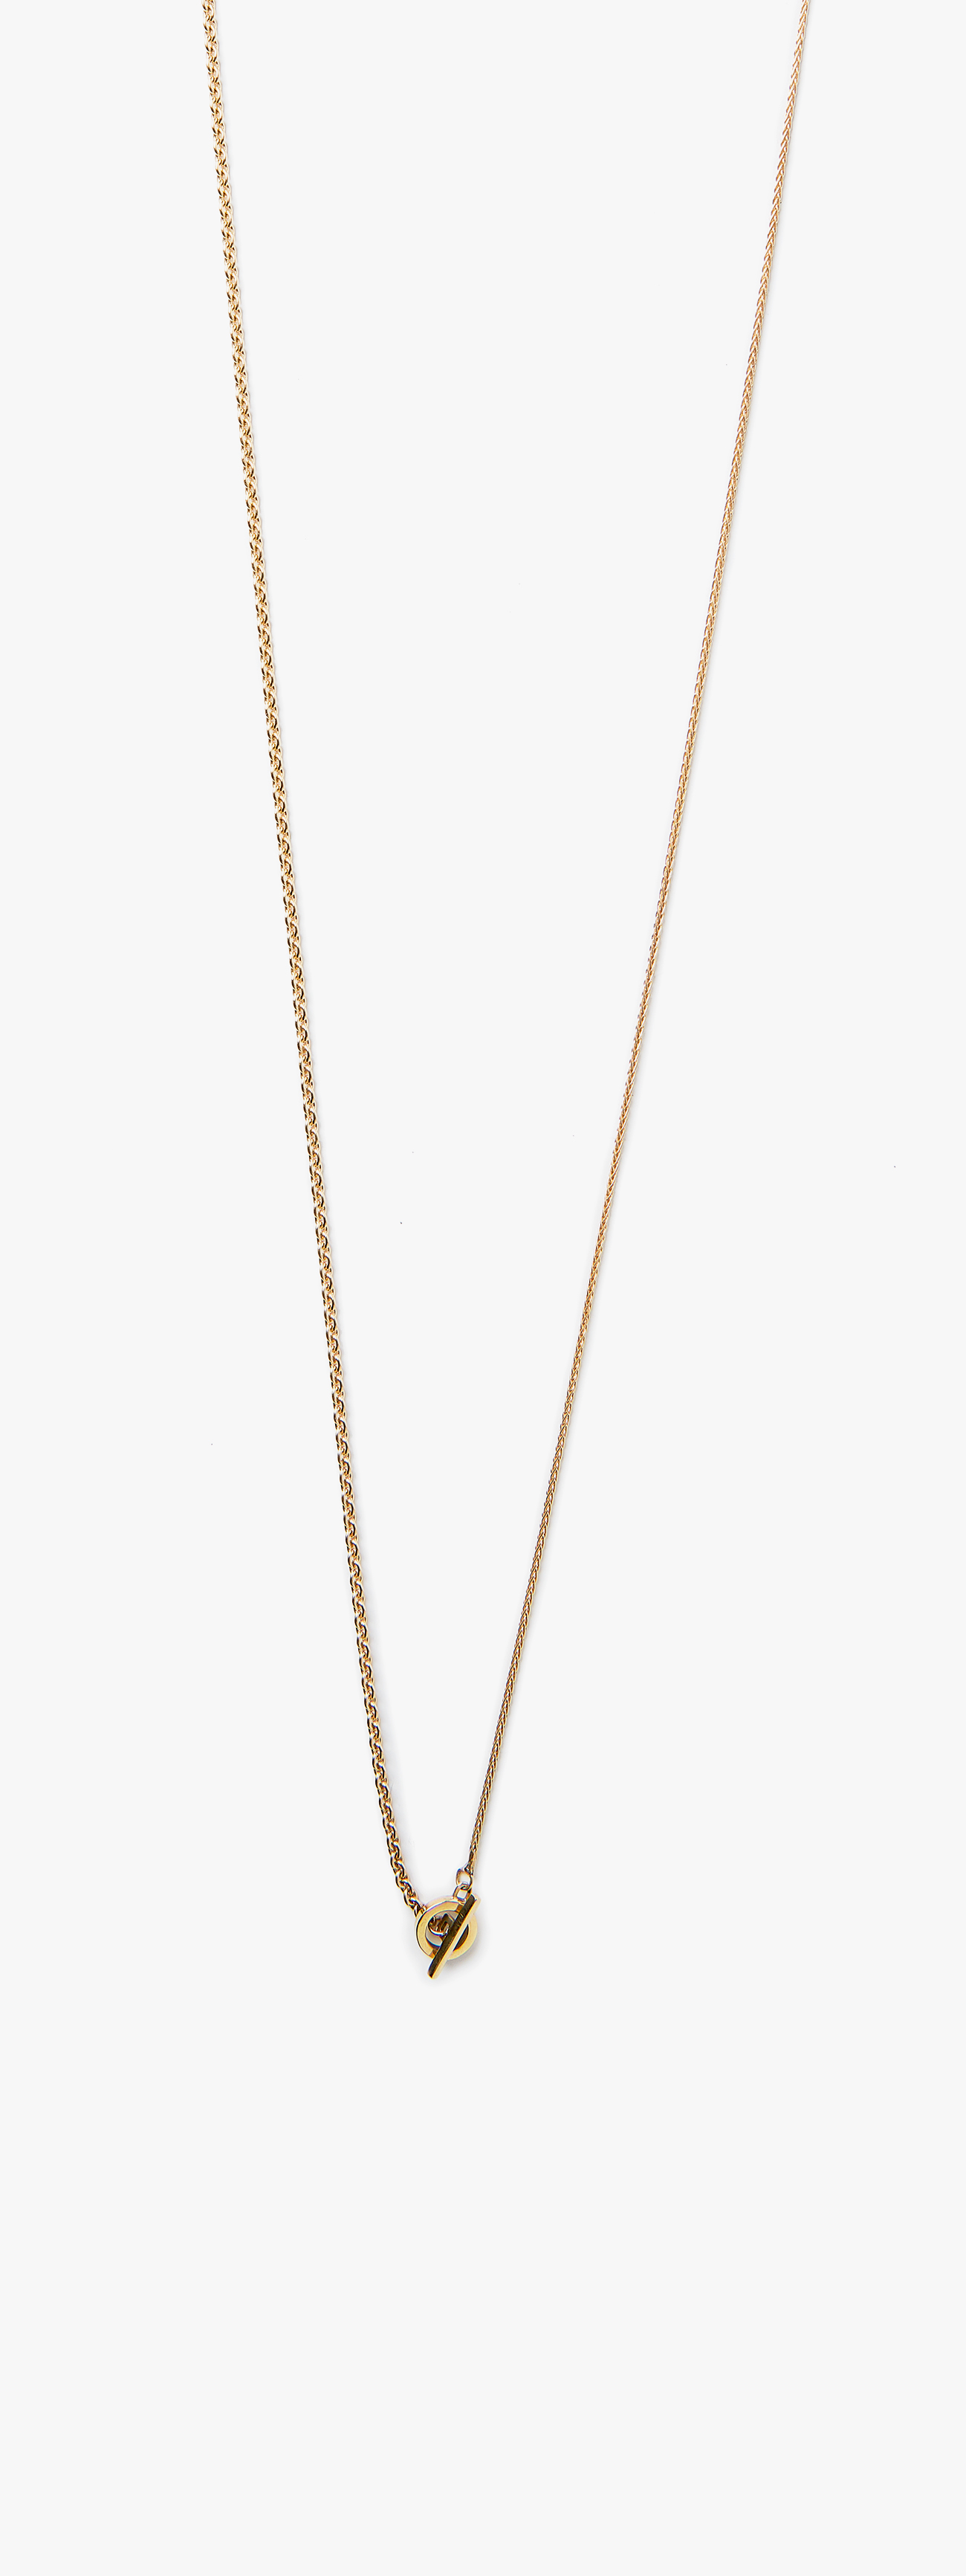 Image of 18k Yellow Gold Cable / 15GA Bar / Chain Necklace